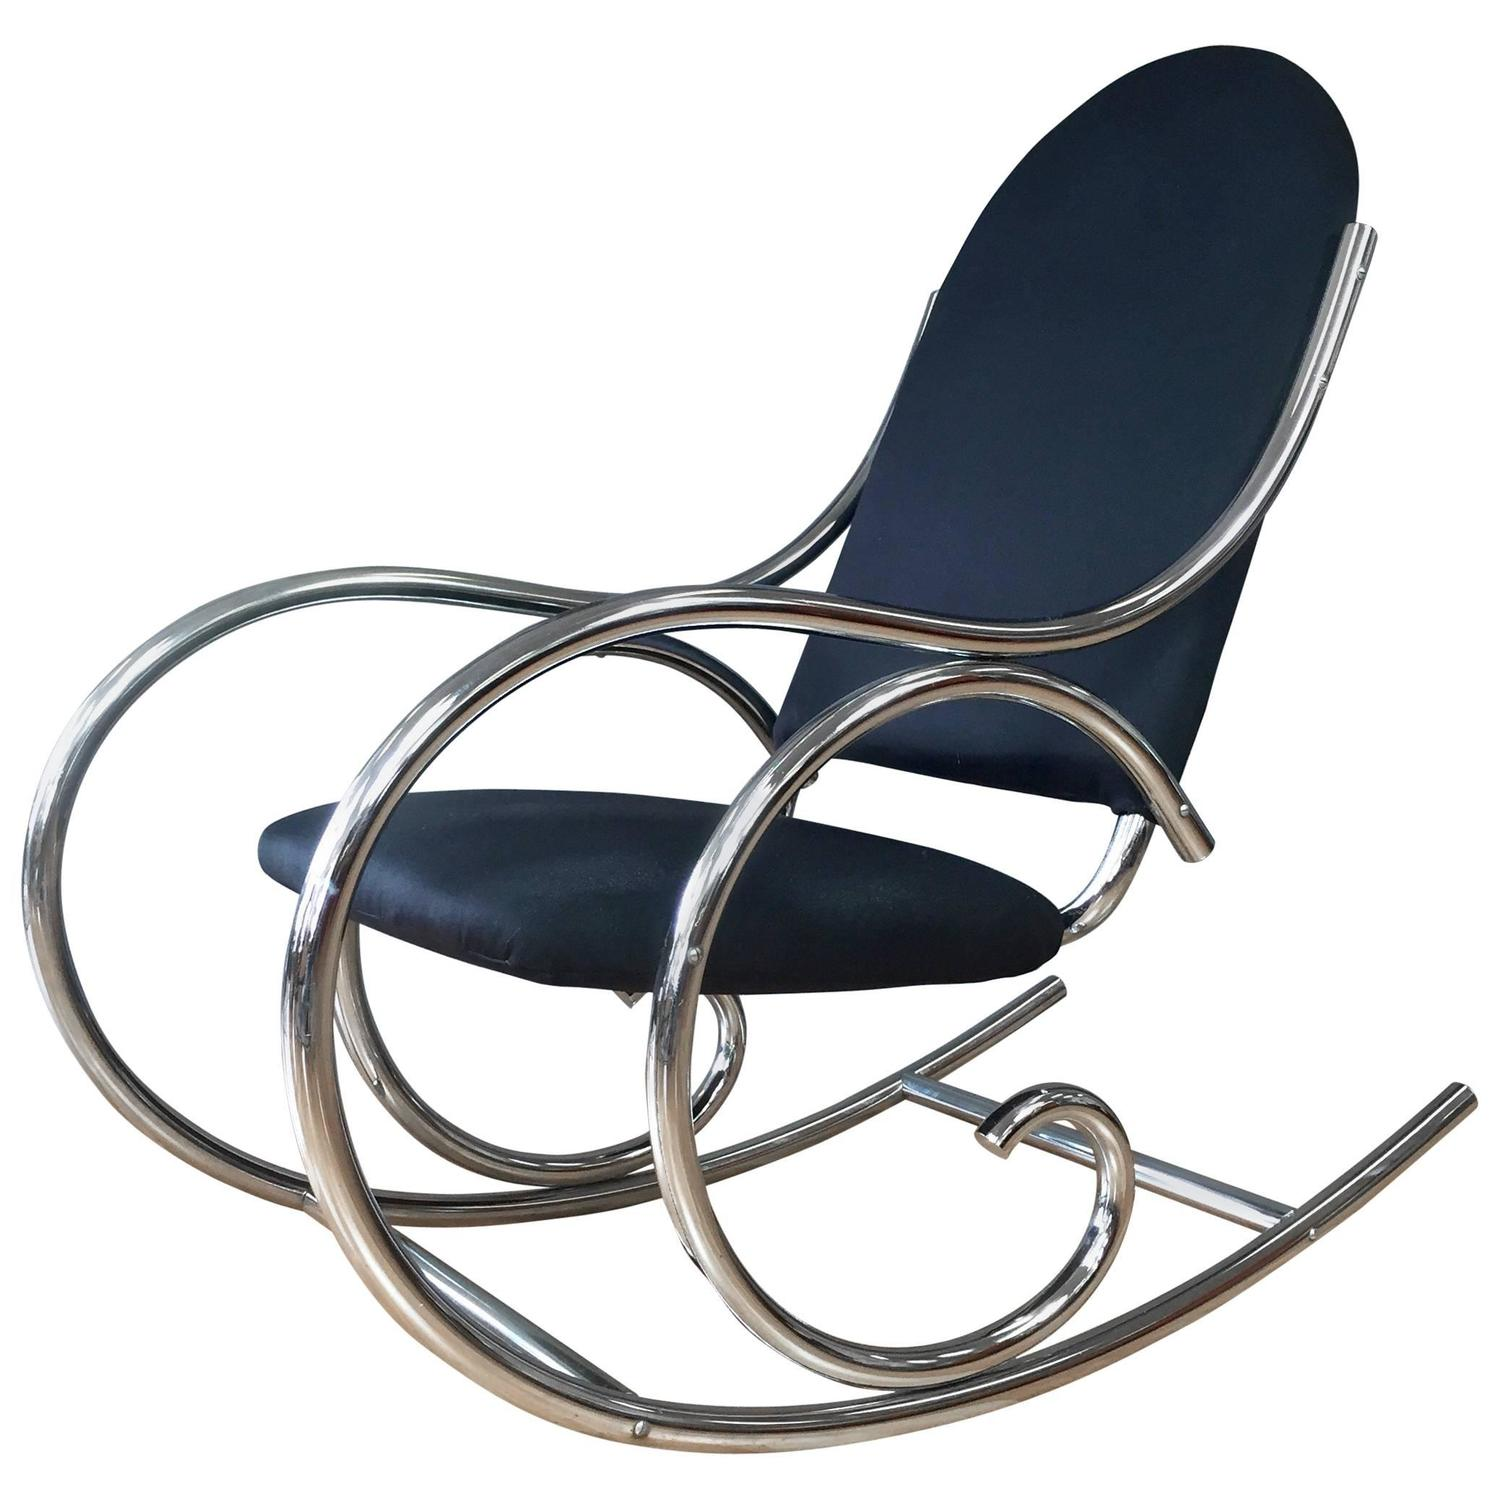 sale retailer 8d9dd 53bac Curvaceous Upholstered Chrome Rocking Chair in the Style of ...